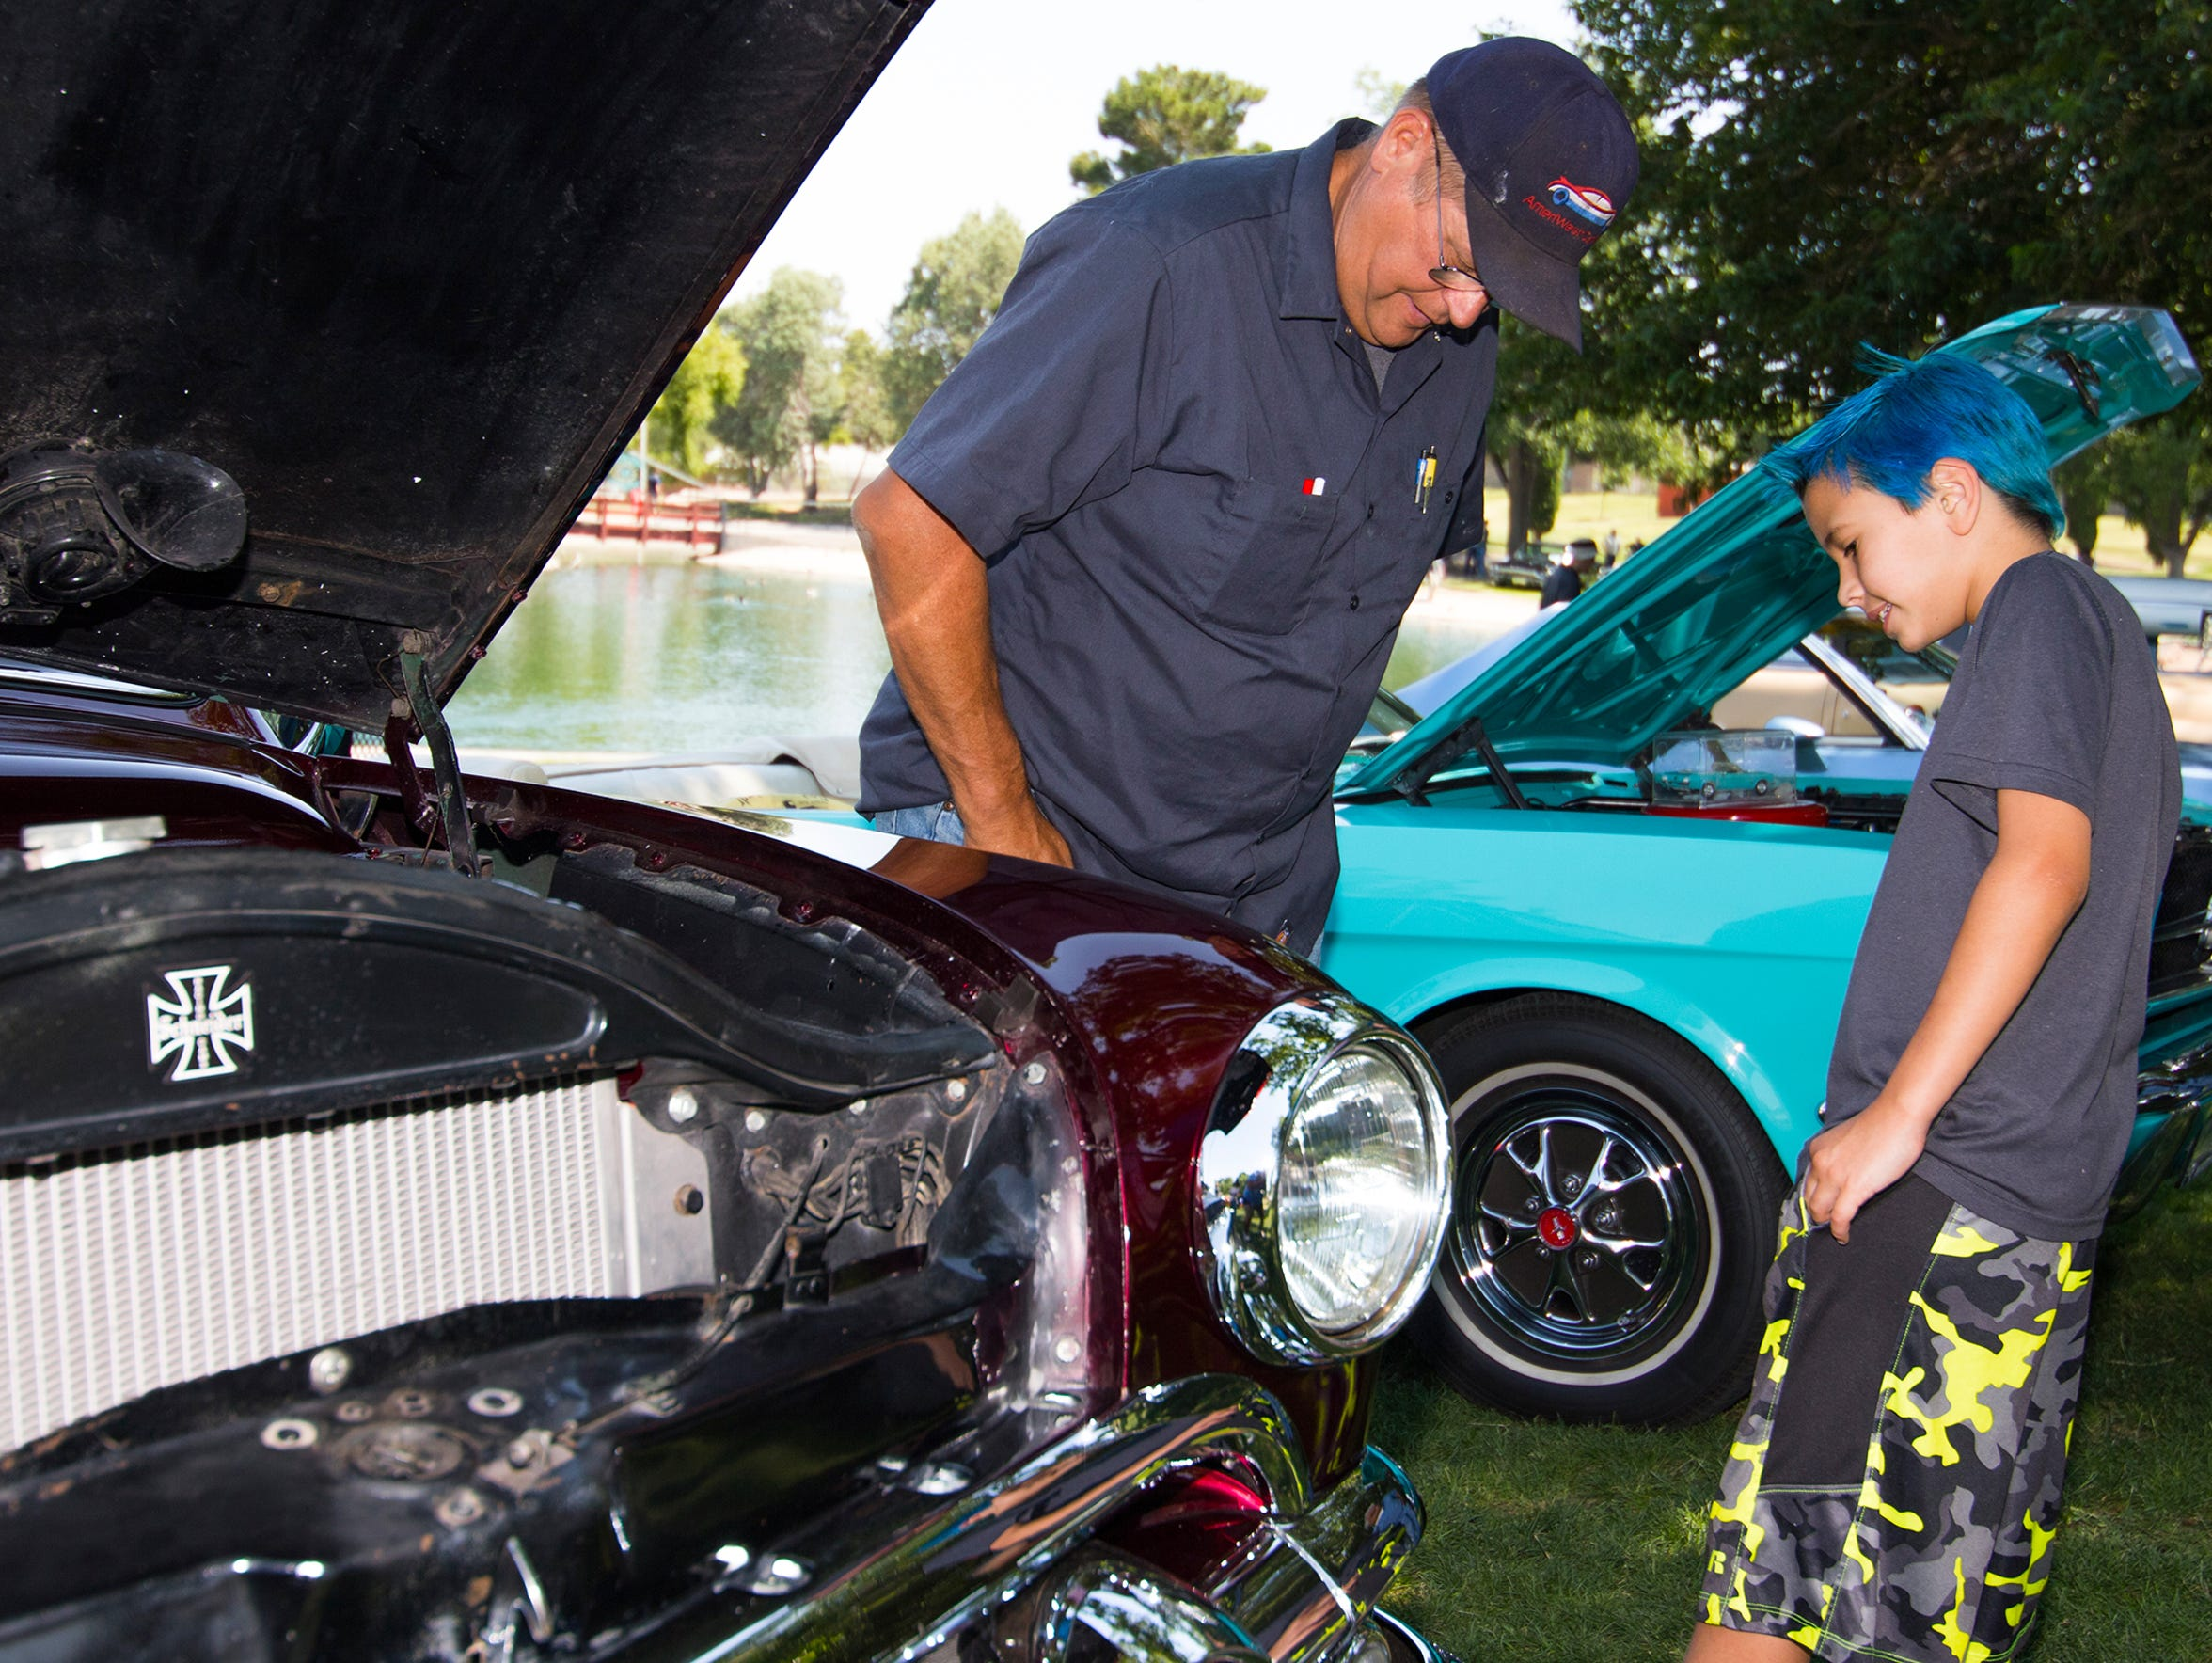 The annual Kars for Kids car show is free to attend.